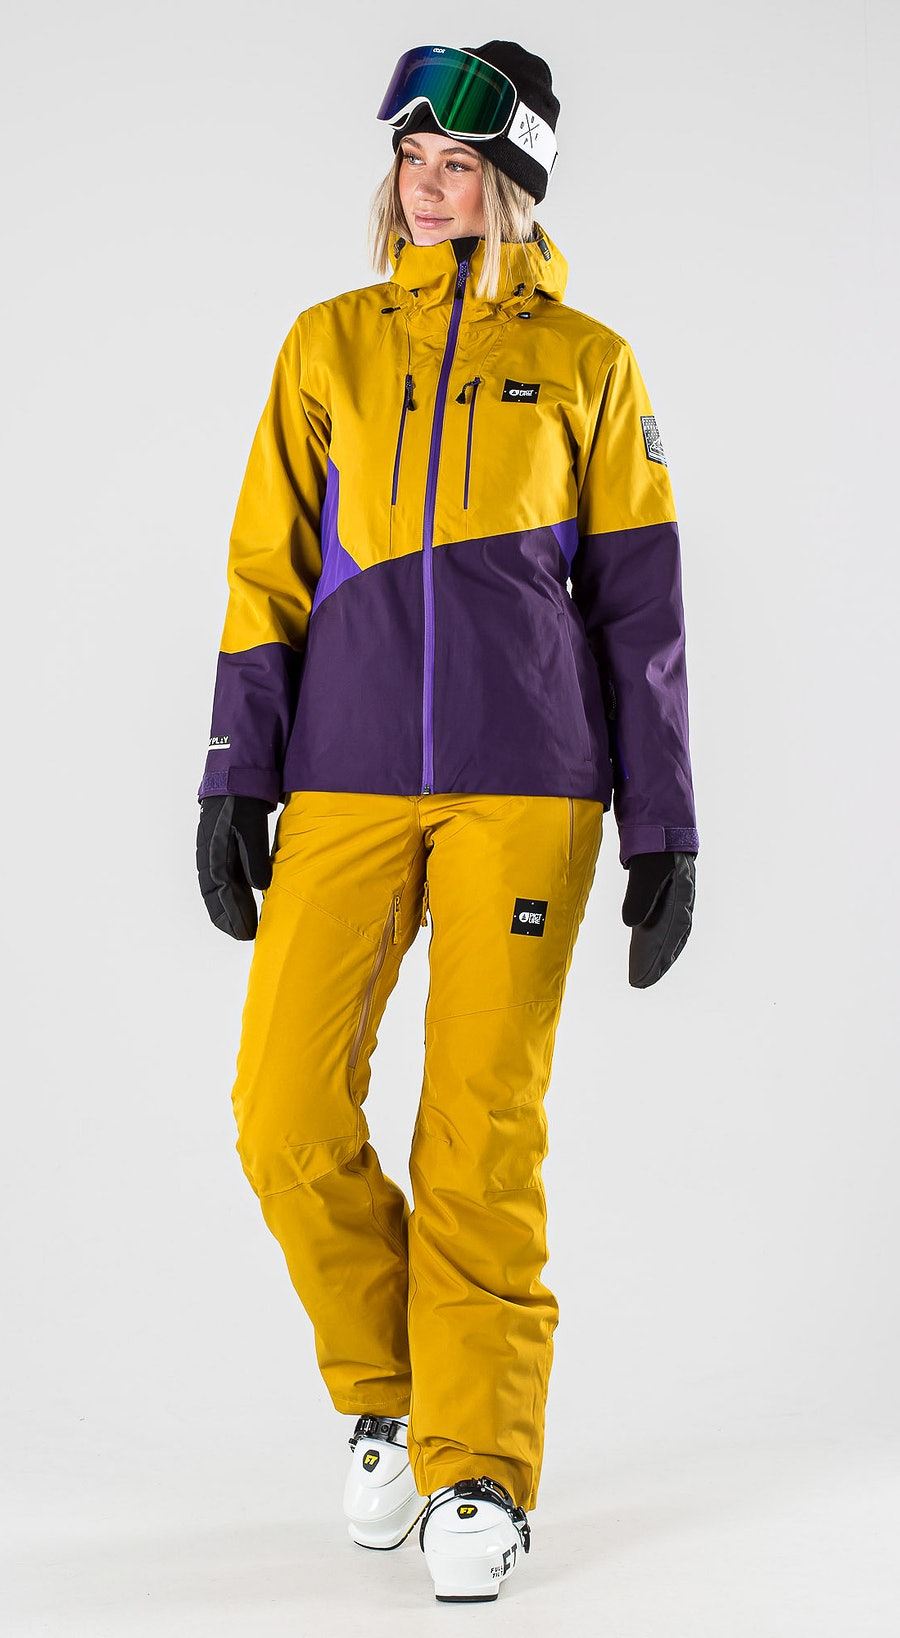 Picture Seen Safran Ski Clothing Multi